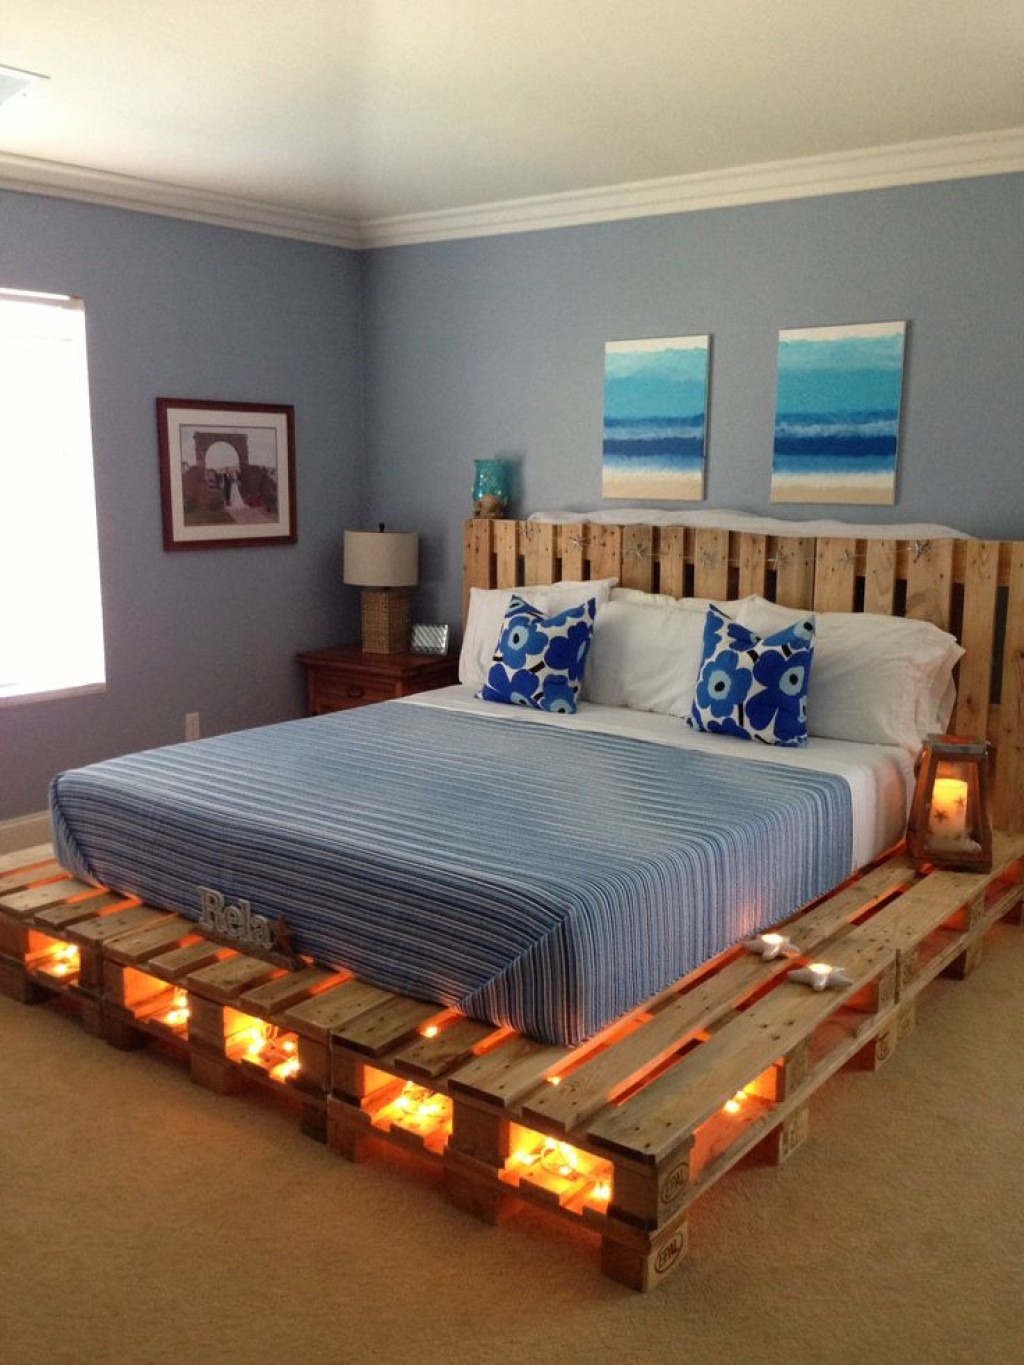 Japanese Inspired Beds Japanese Inspired Low Bed Frame Pallet Project Homebnc